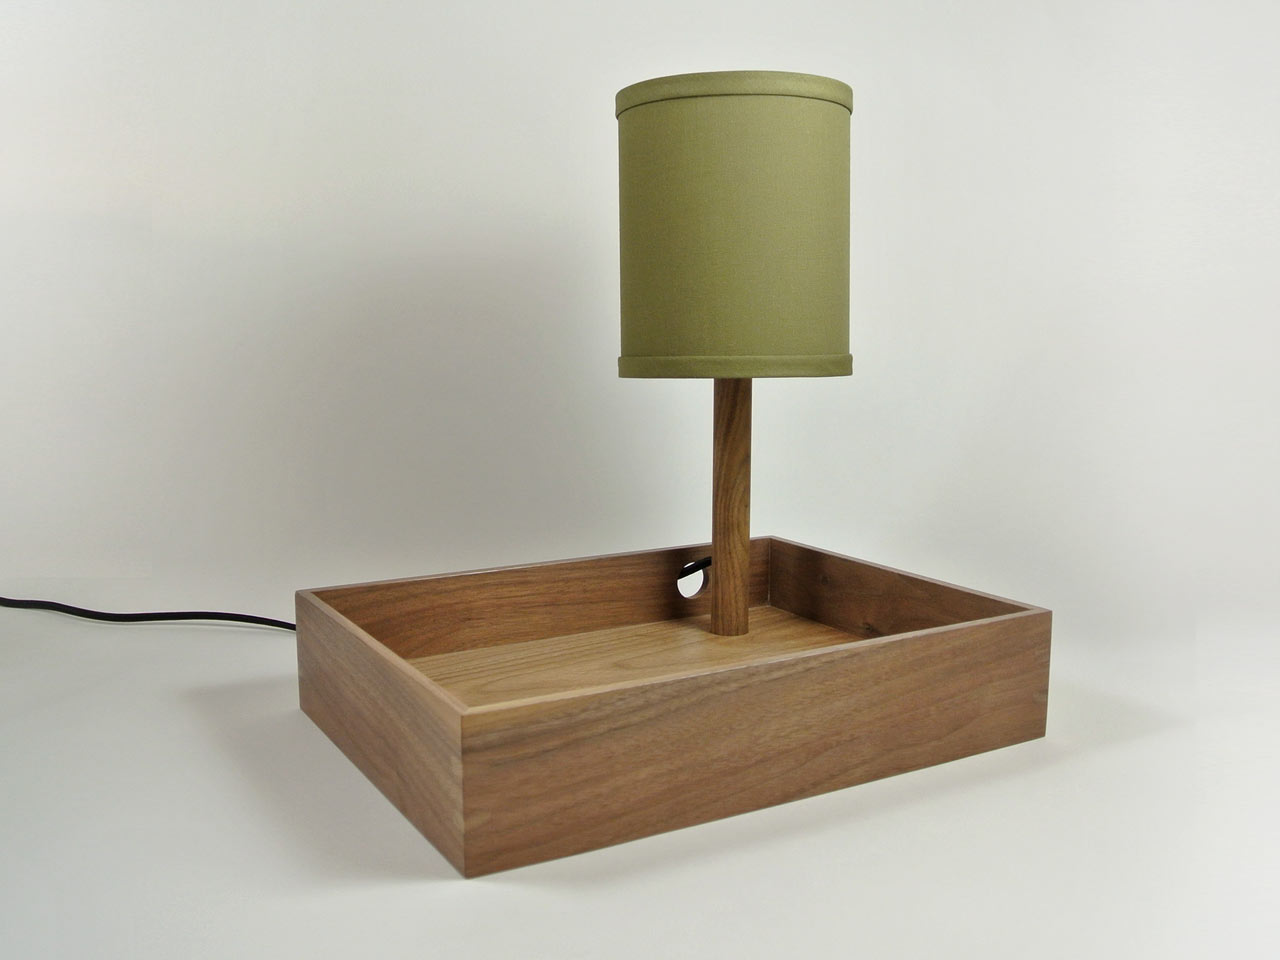 Perch Lamp and Tray Series by Dino Sanchez